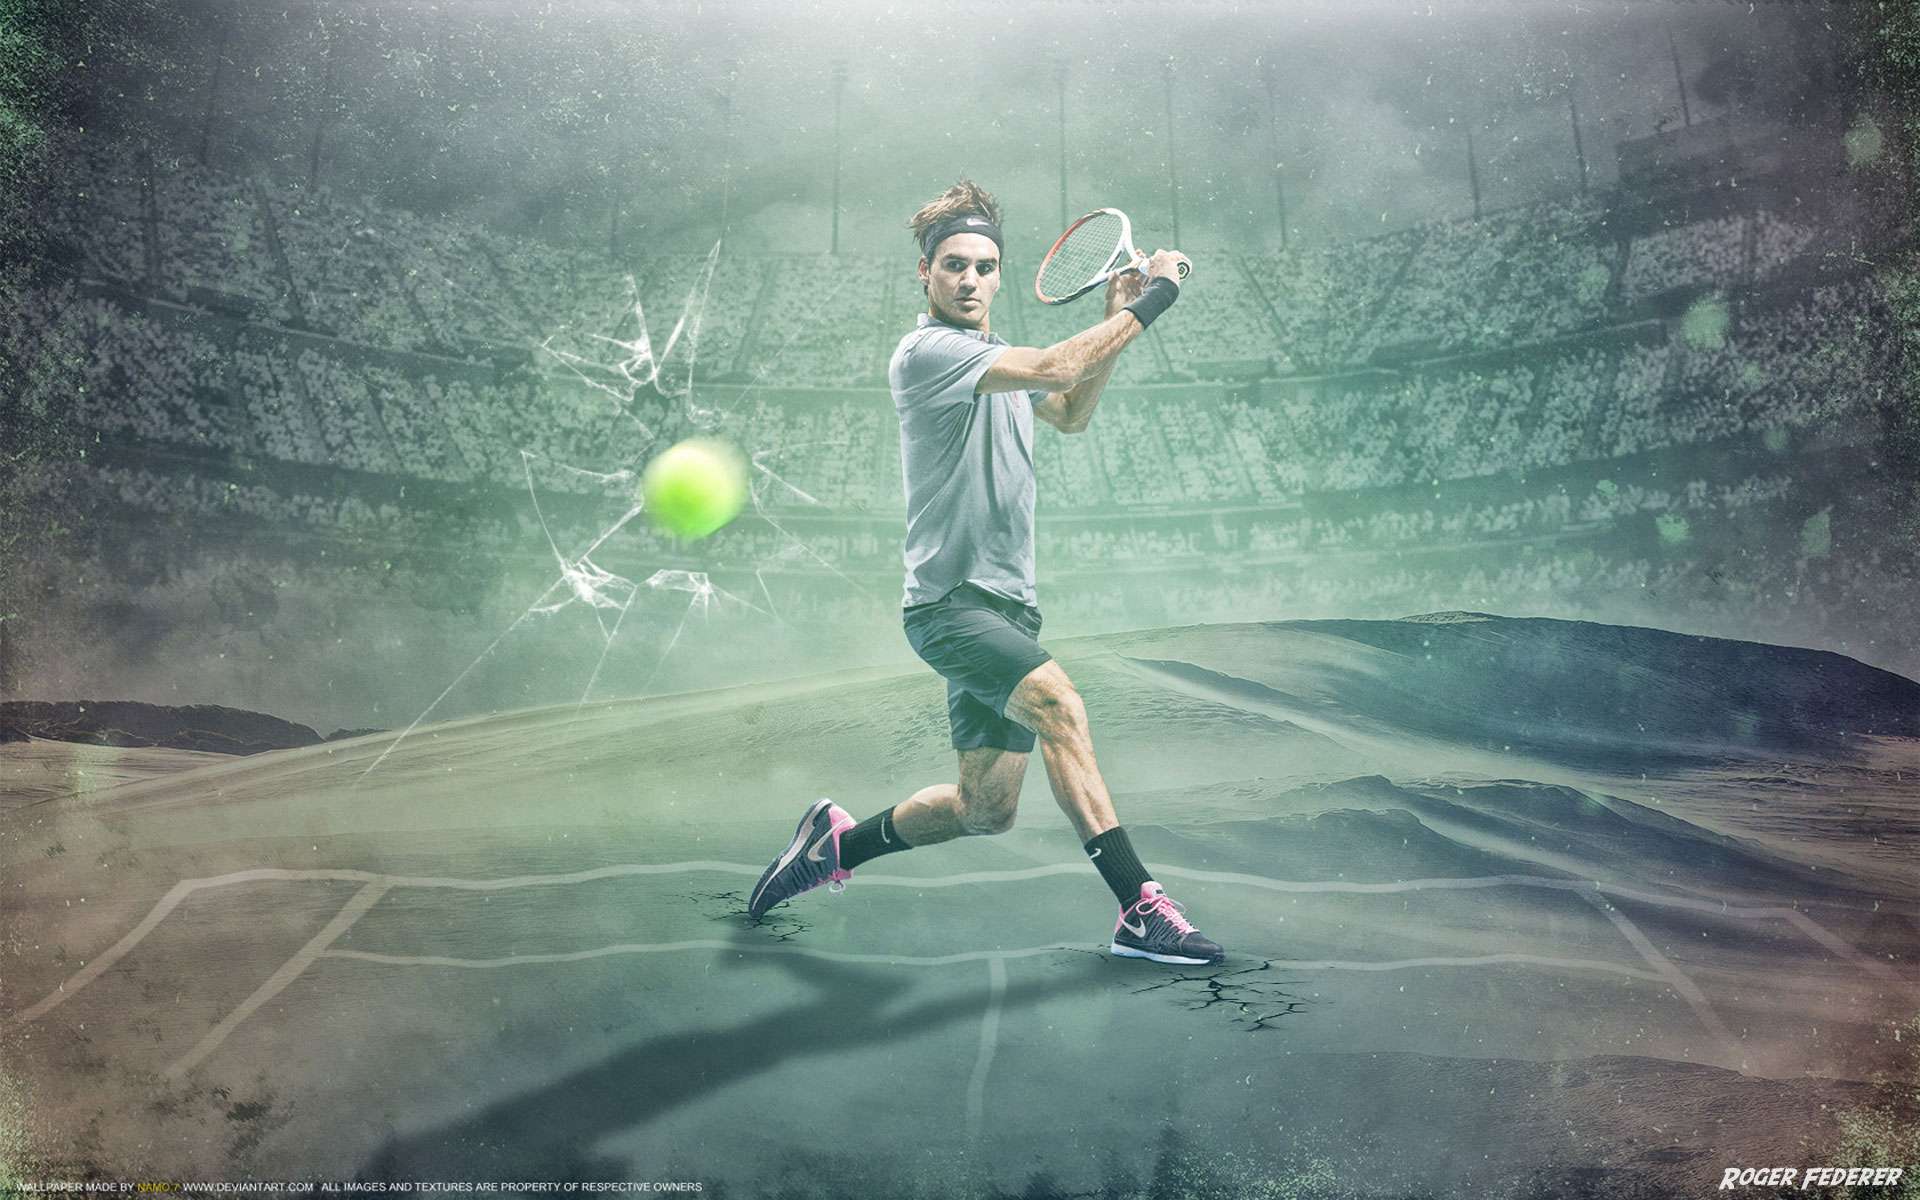 Roger Federer Wallpapers Download O4TSF24   4USkY 1920x1200